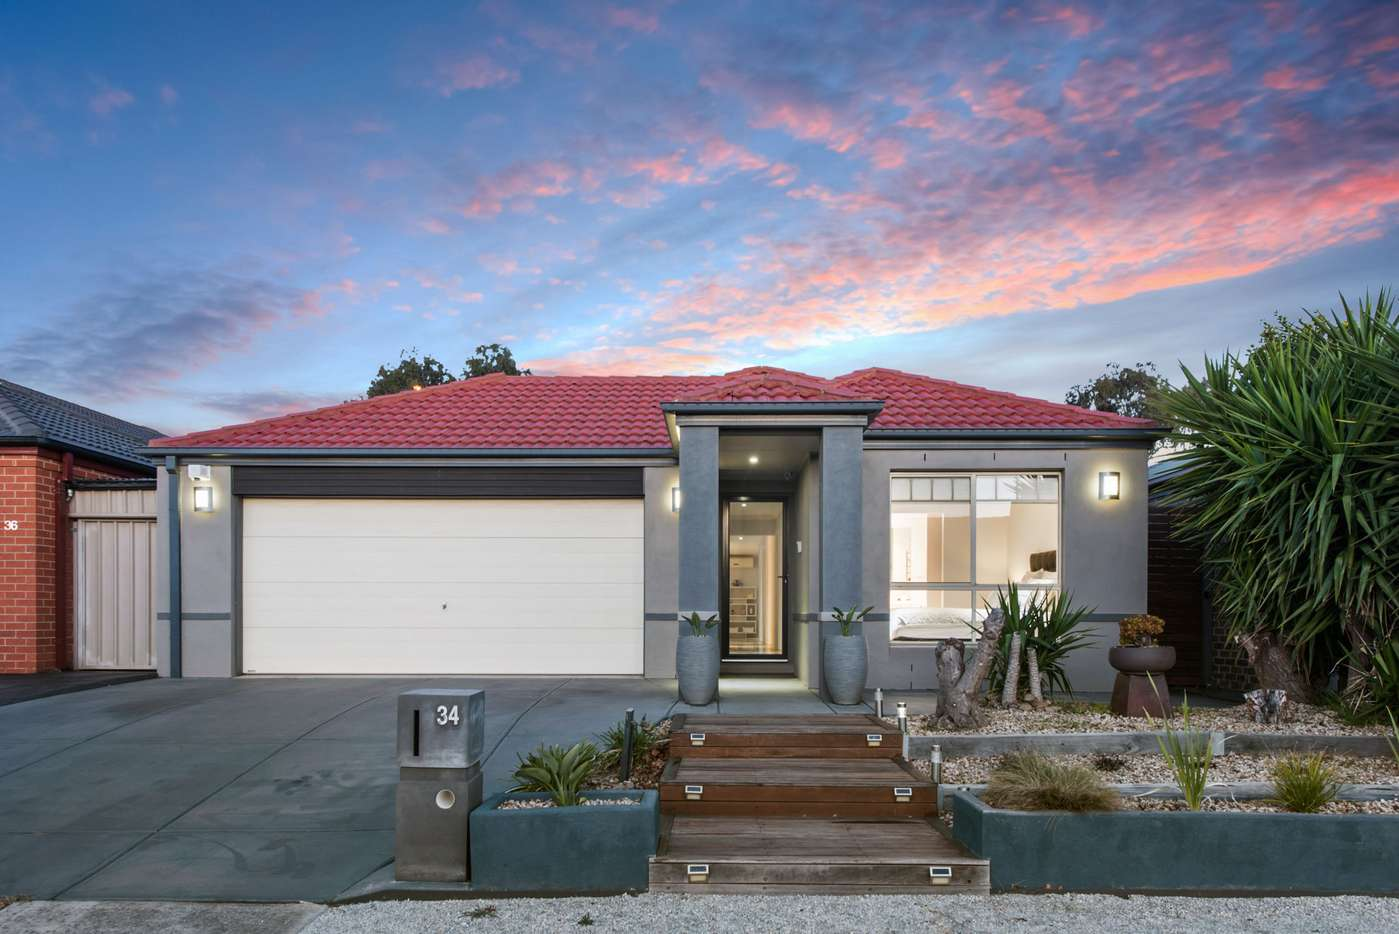 Main view of Homely house listing, 34 Barringo Way, Caroline Springs, VIC 3023